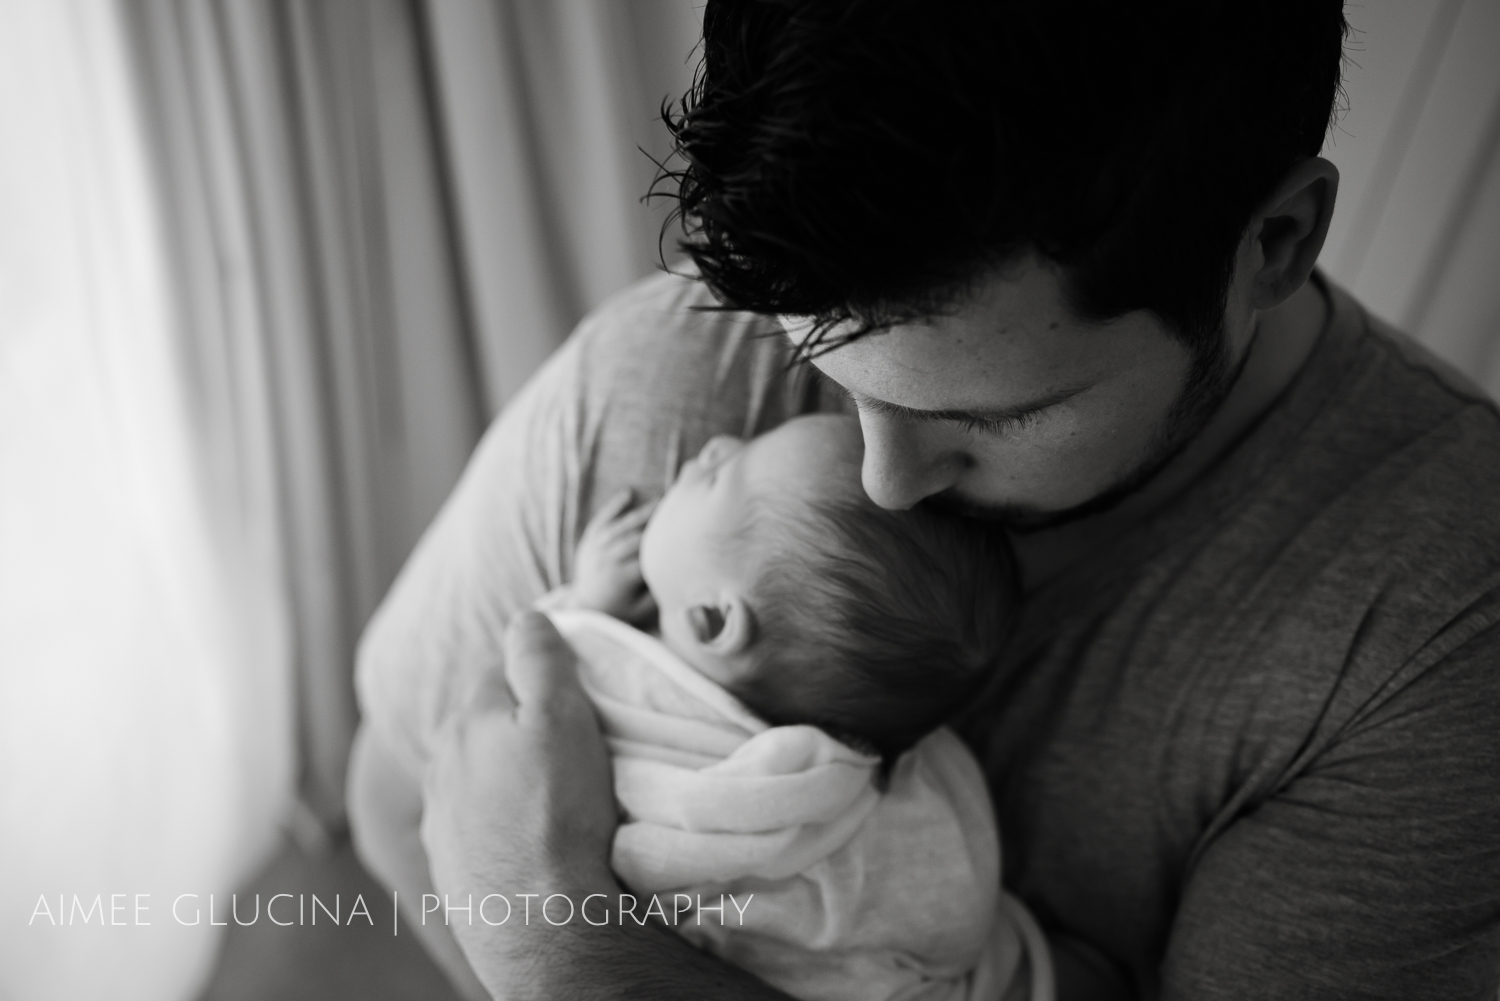 Lifestyle images of Fathers by Aimee Glucina Photography-16.jpg